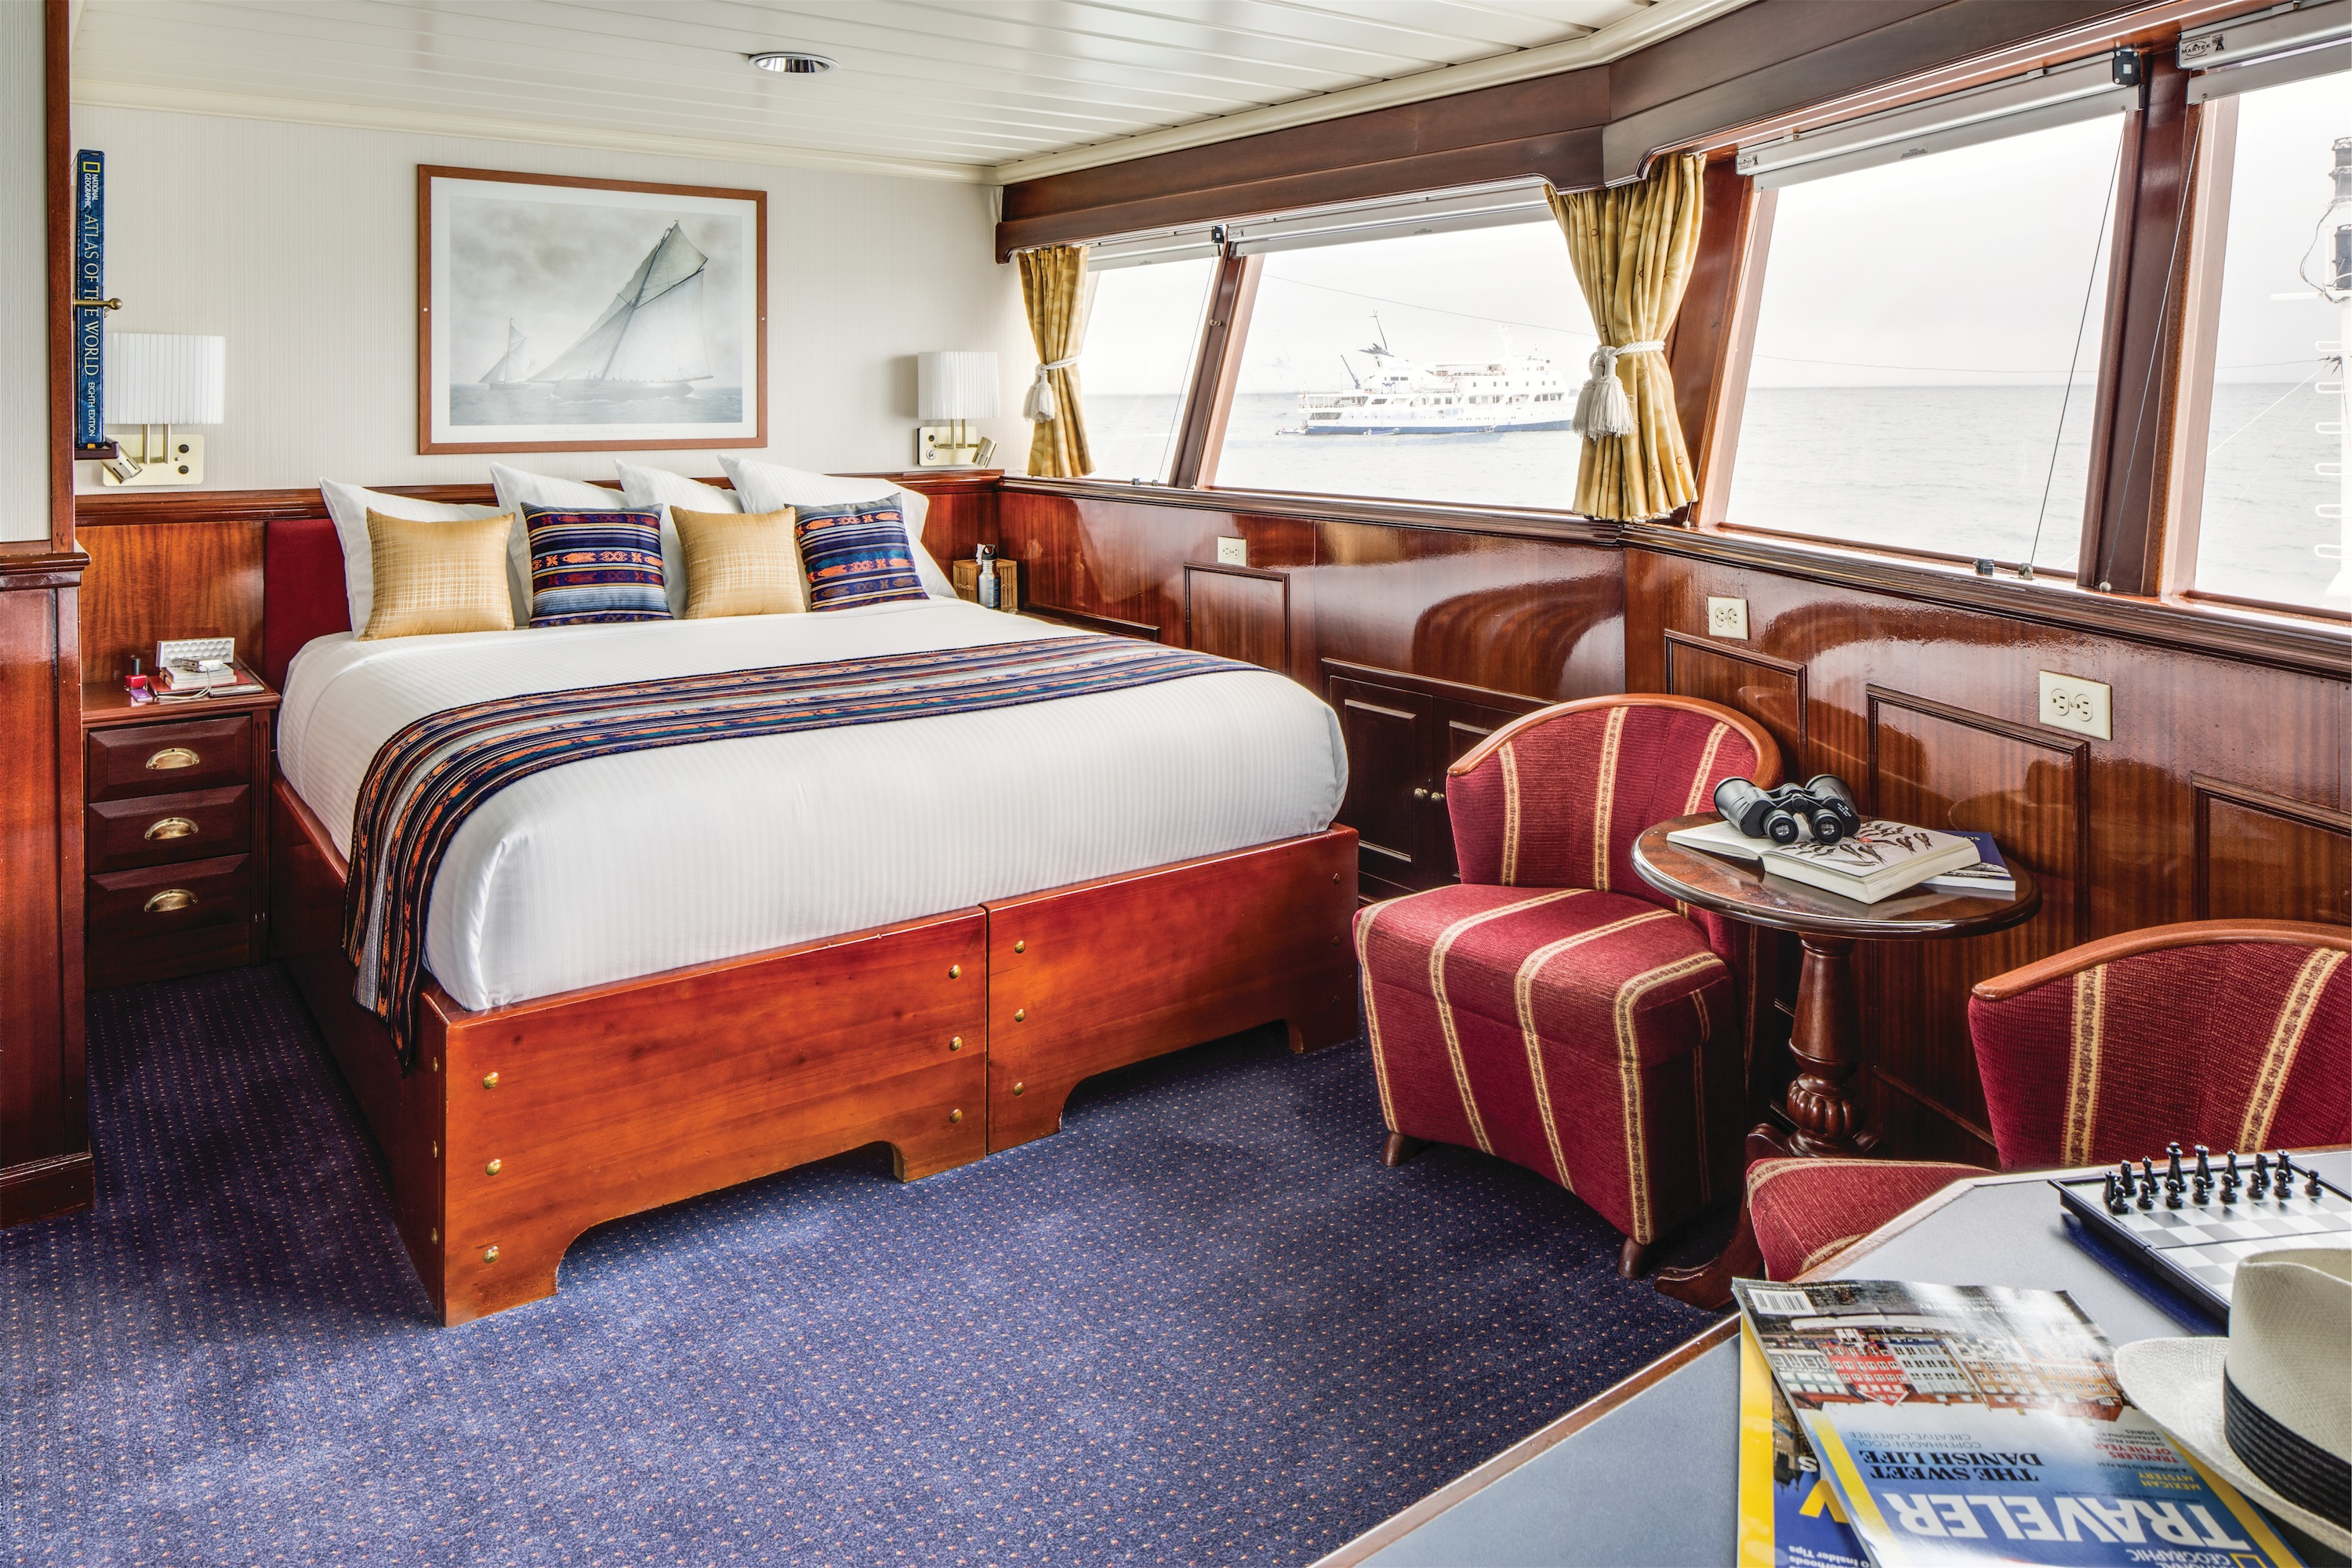 Lindblad Expeditions National Geographic Islander Accommodation Category 5 Bed & Living Room.jpg